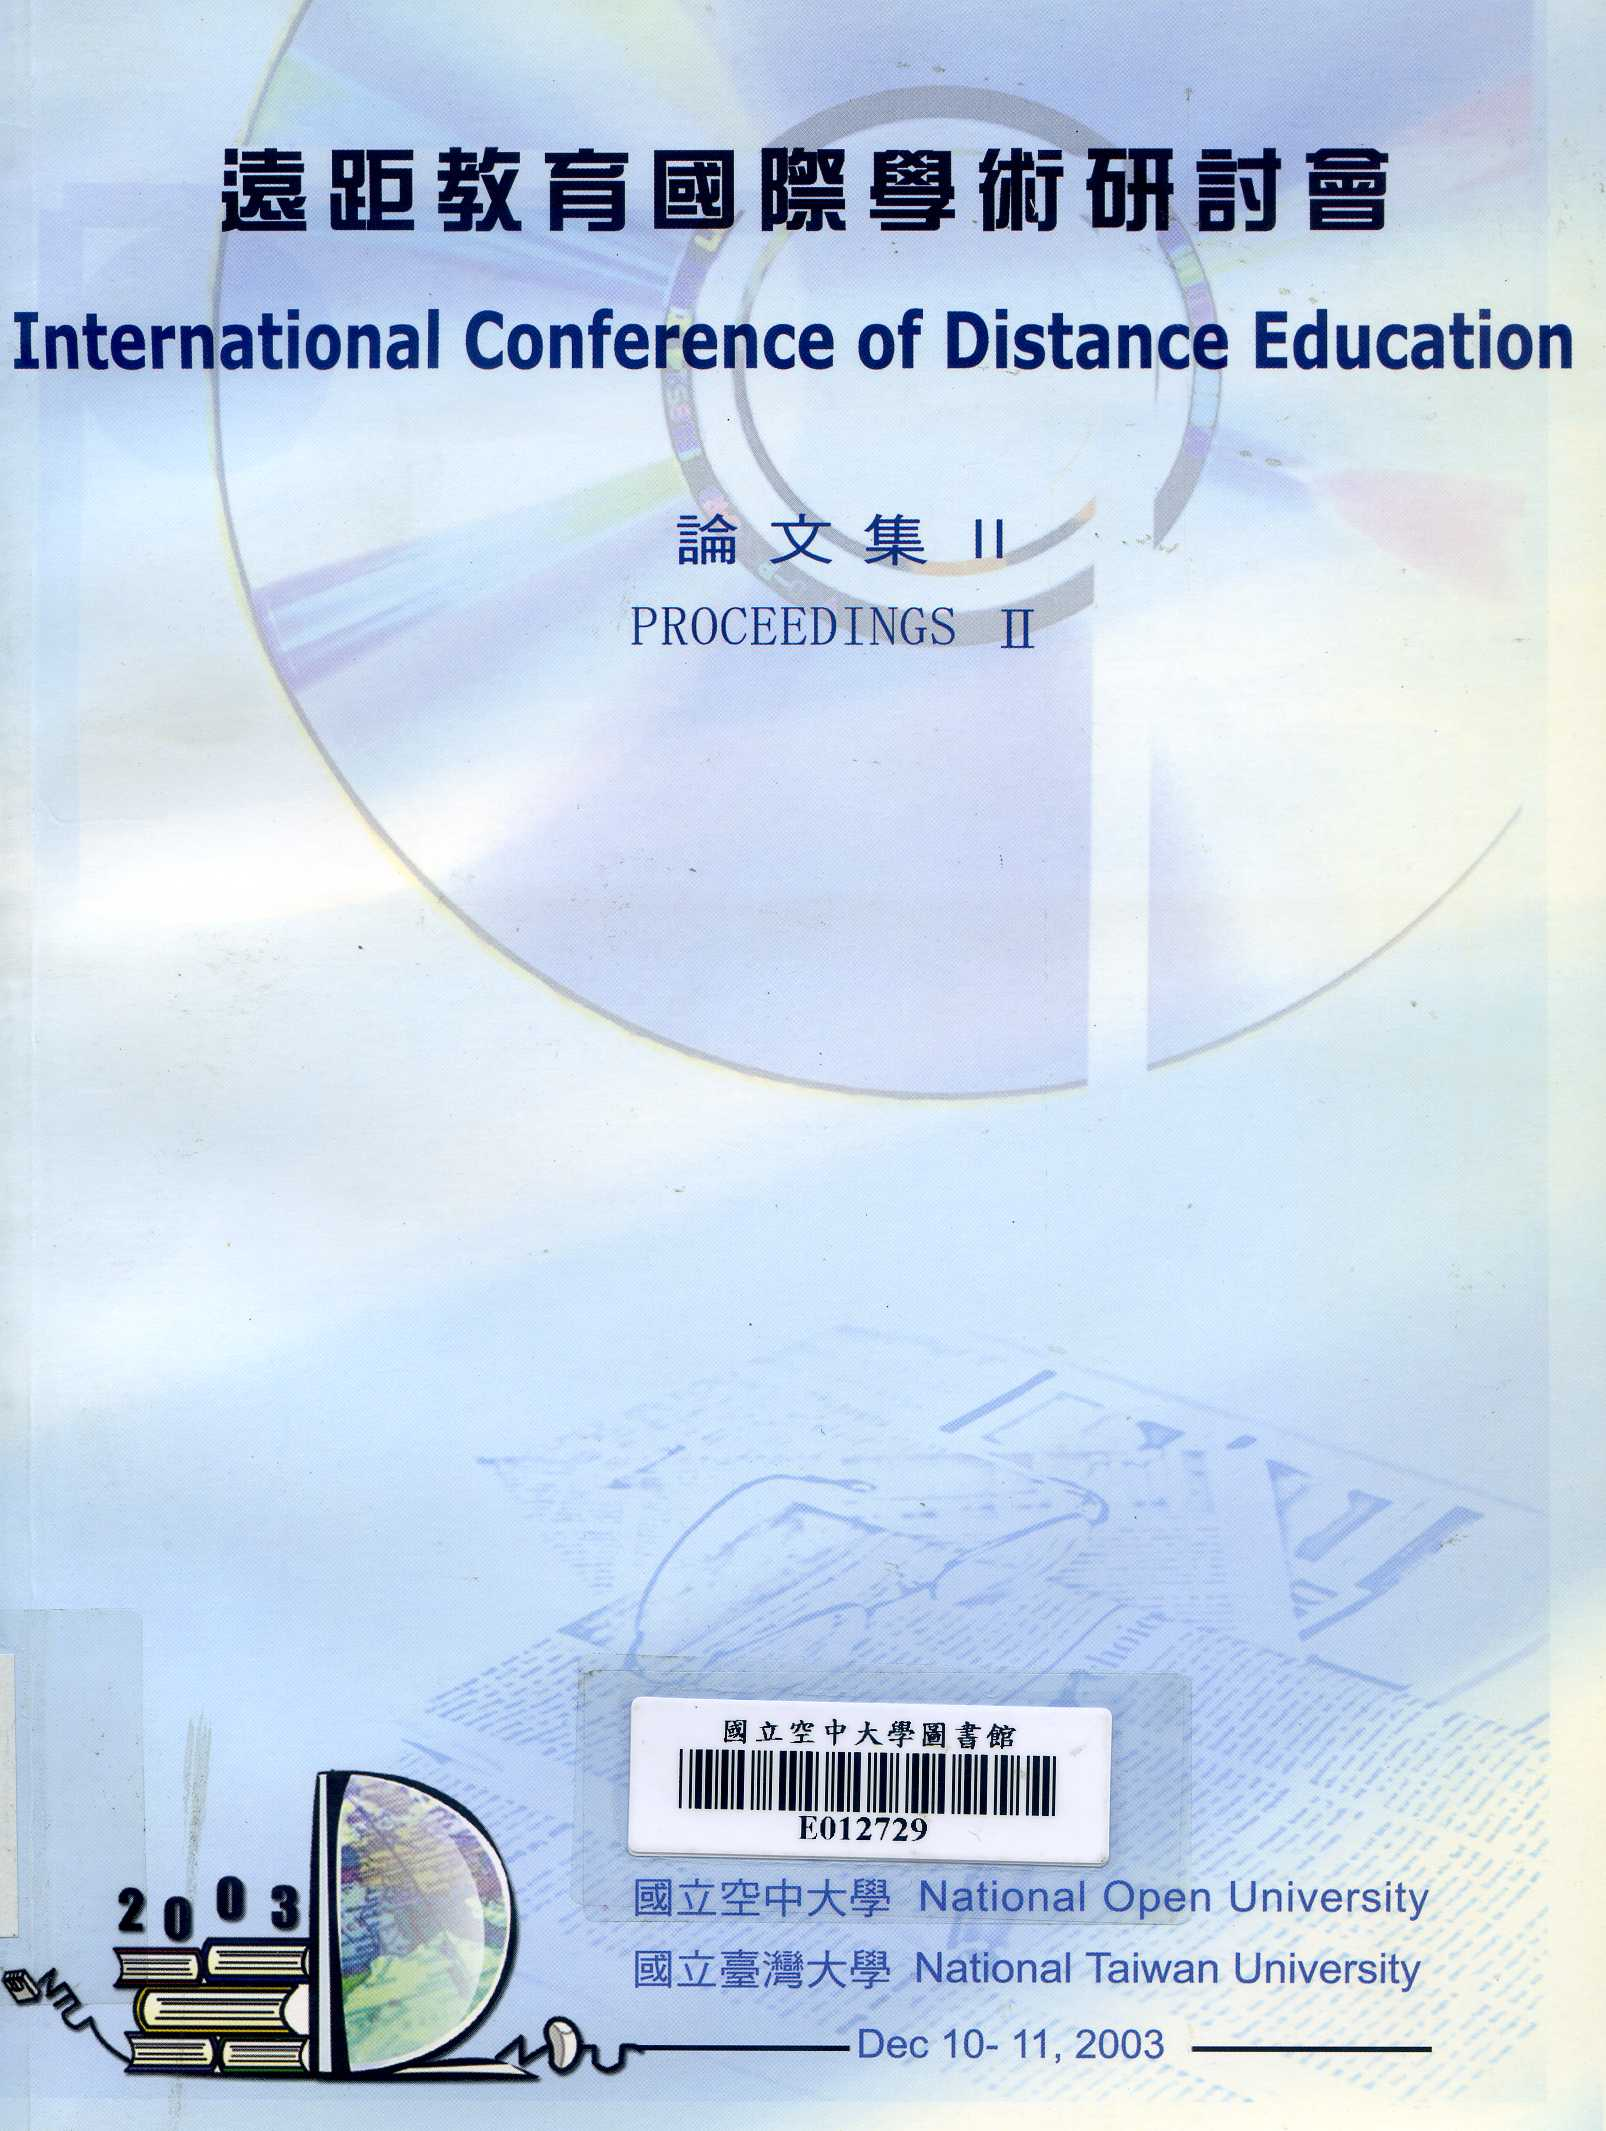 International conference of distance education proceedings Ⅱ = 遠距教育國際學術研討會論文集 Ⅱ